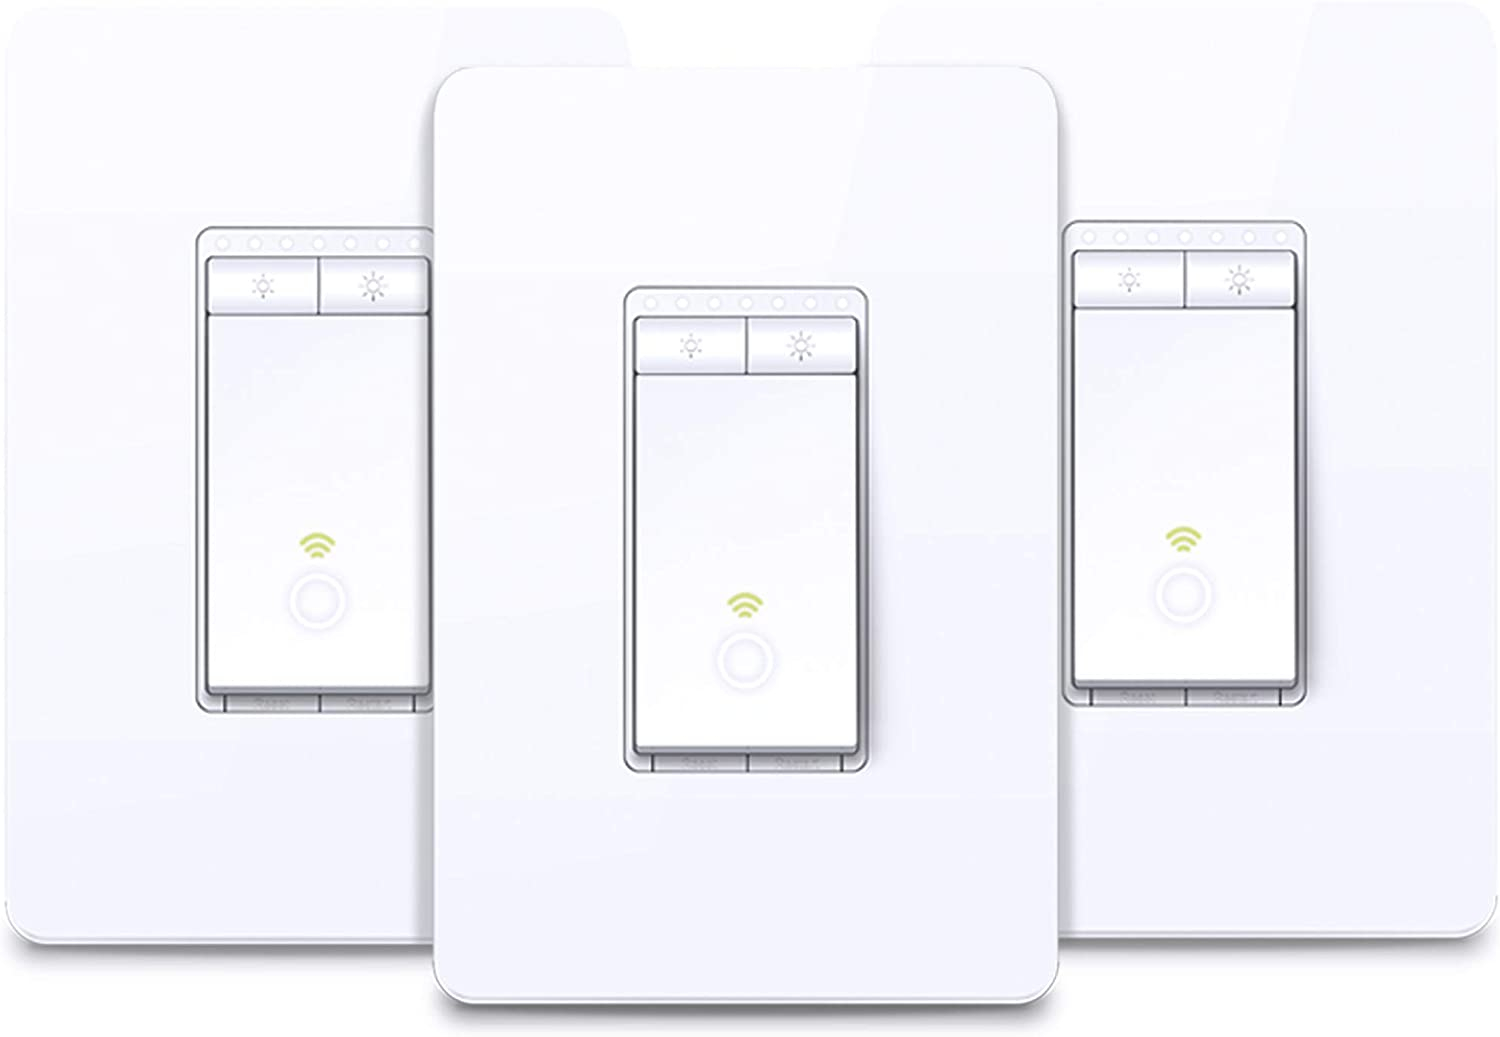 Kasa Smart Dimmer Switch By TP-Link, Single Pole, Needs